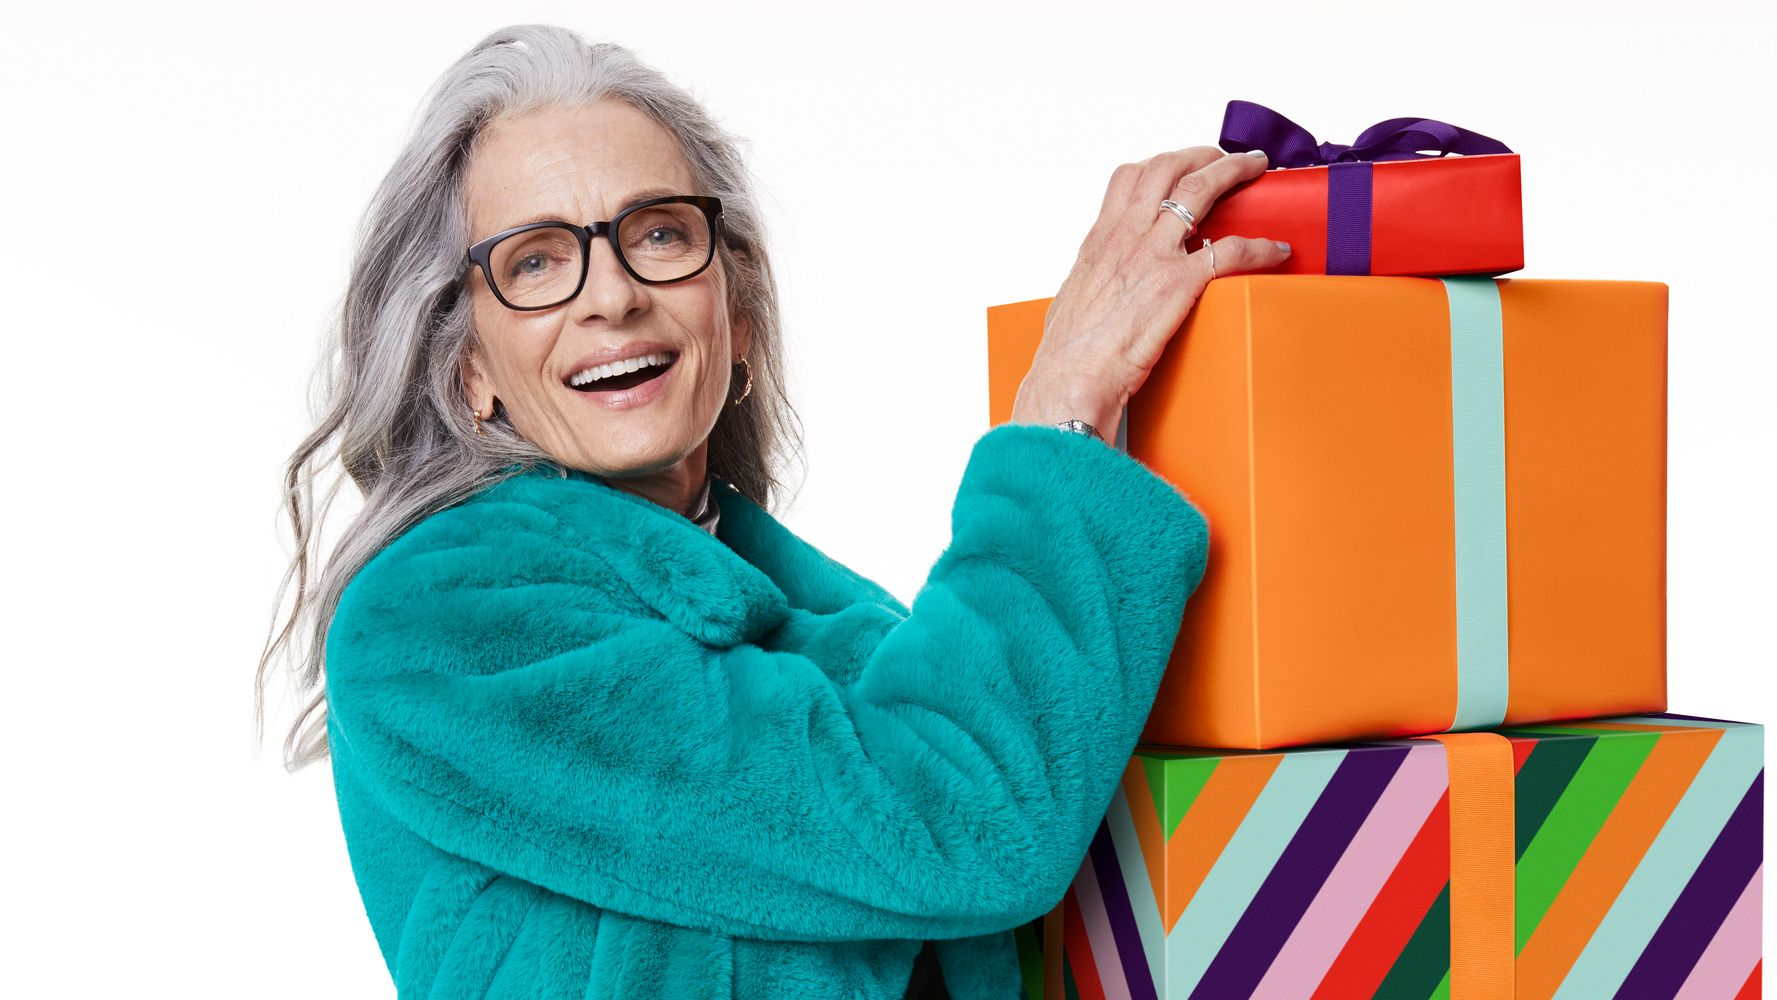 Treat Yourself To Something Special From Nordstrom Rack This Holiday